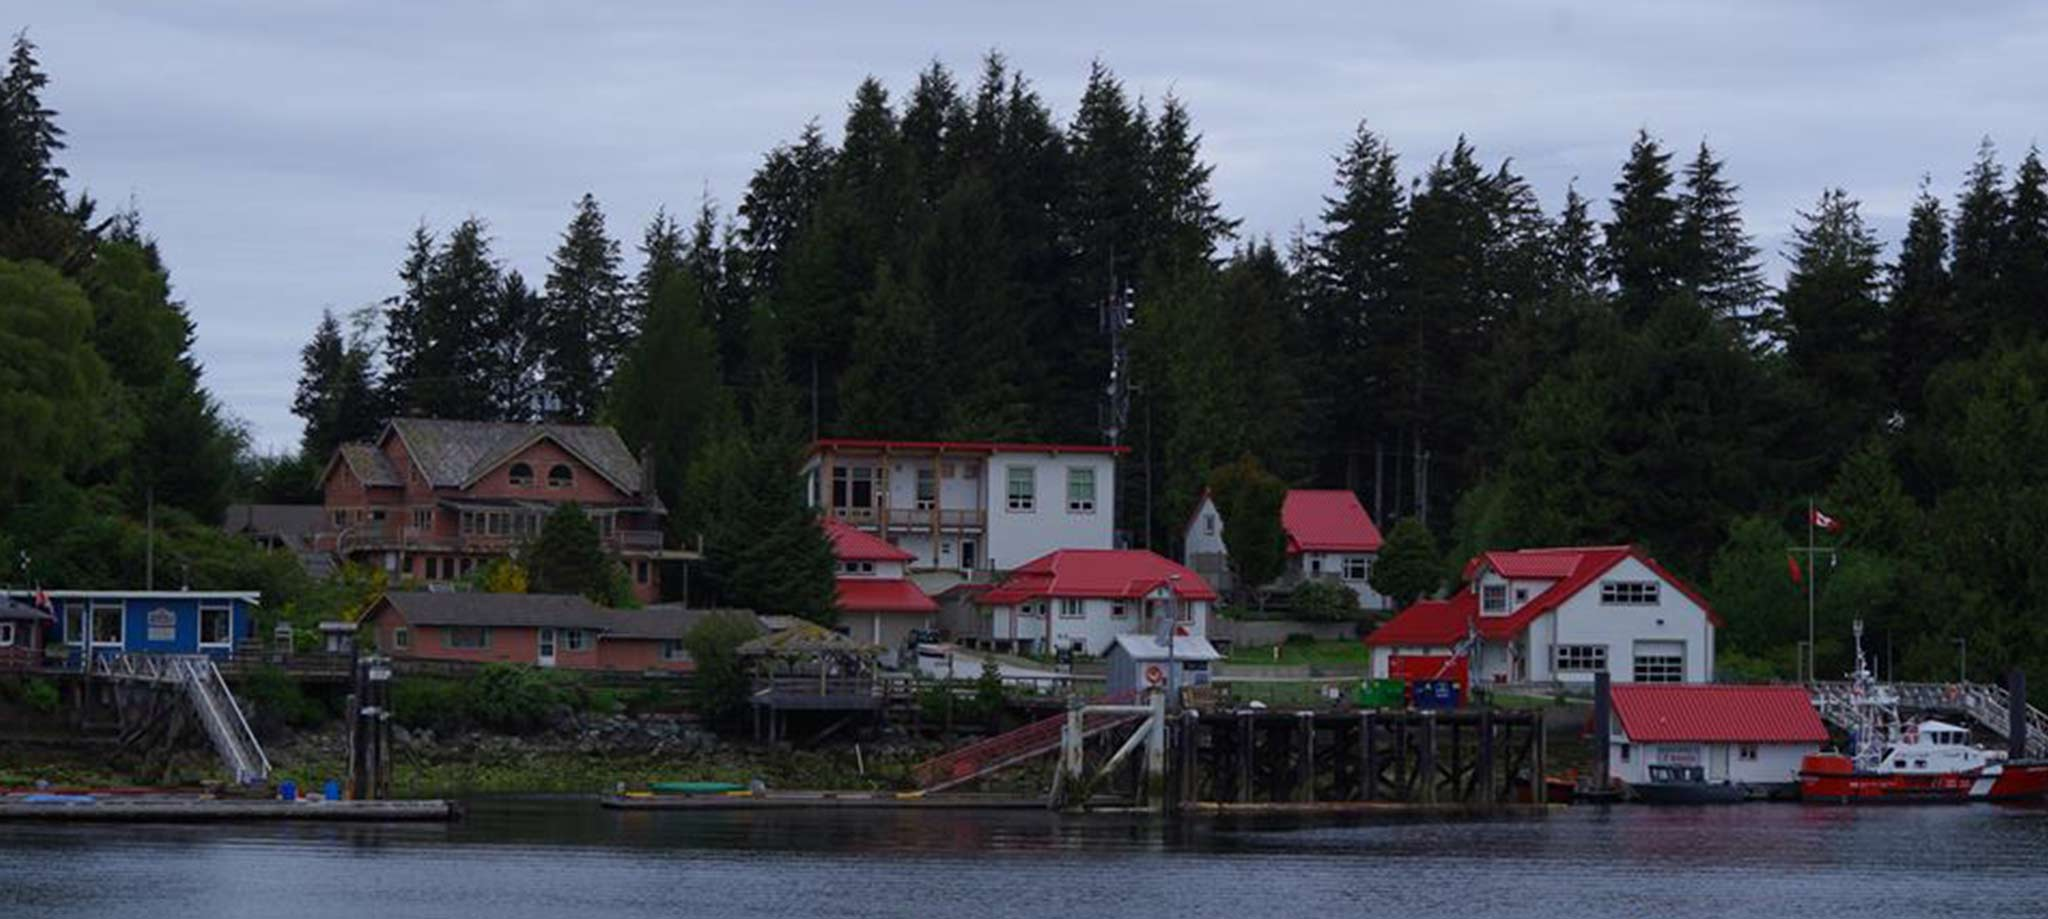 coast guard station bamfield